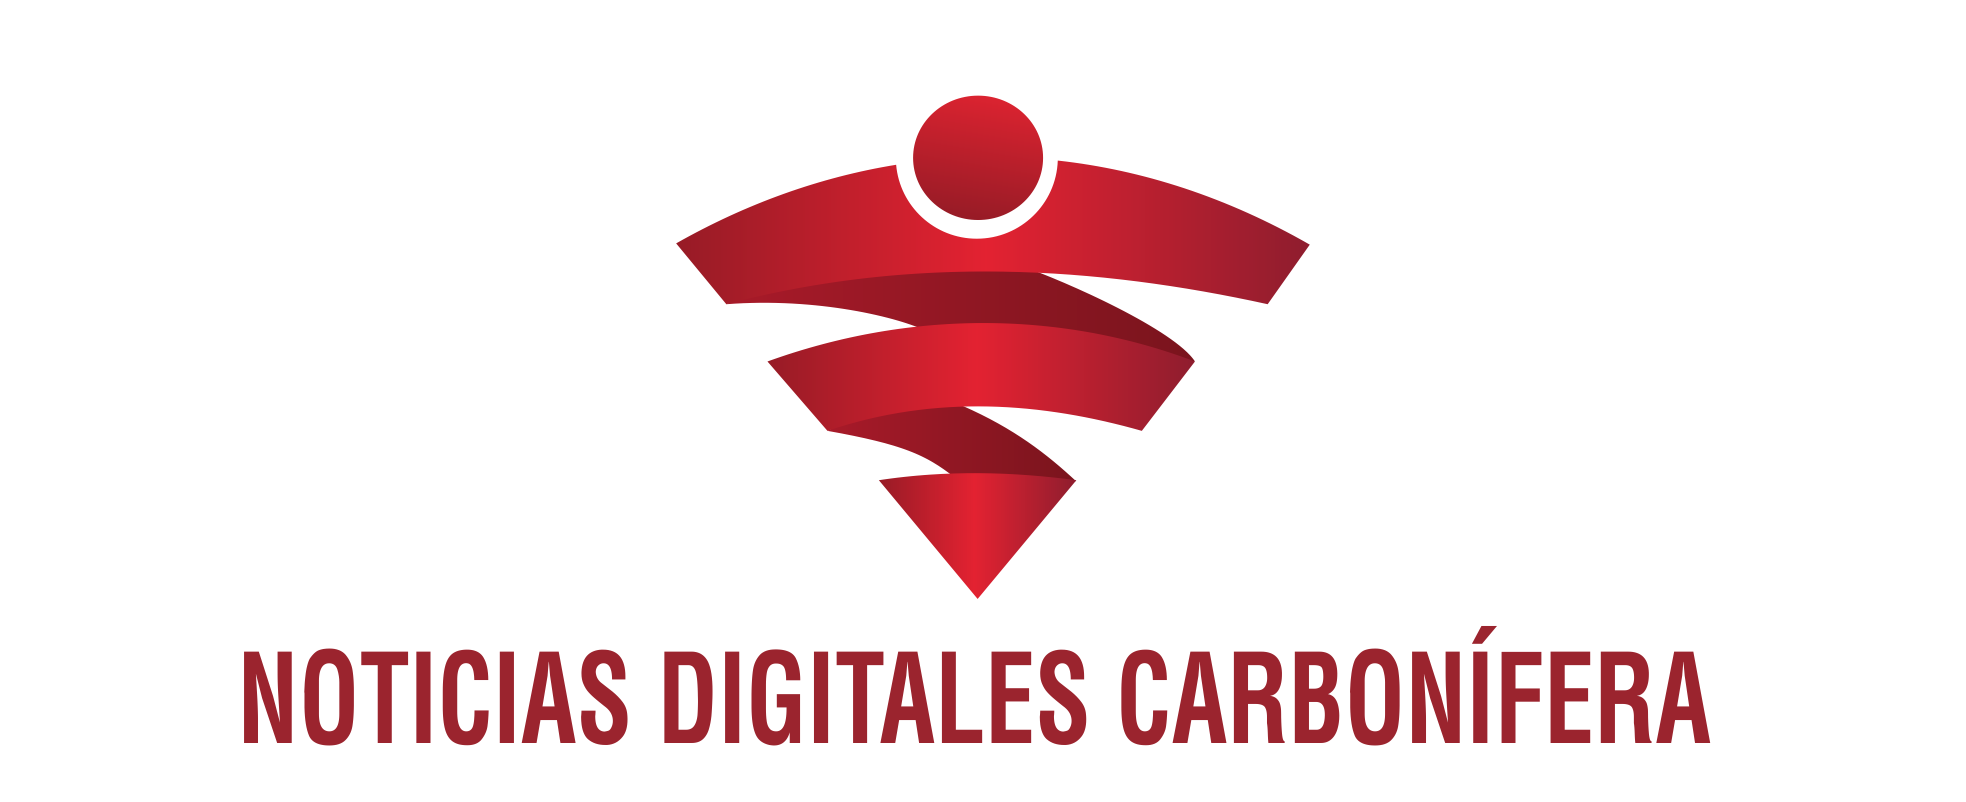 Noticias Digitales Carbonífera